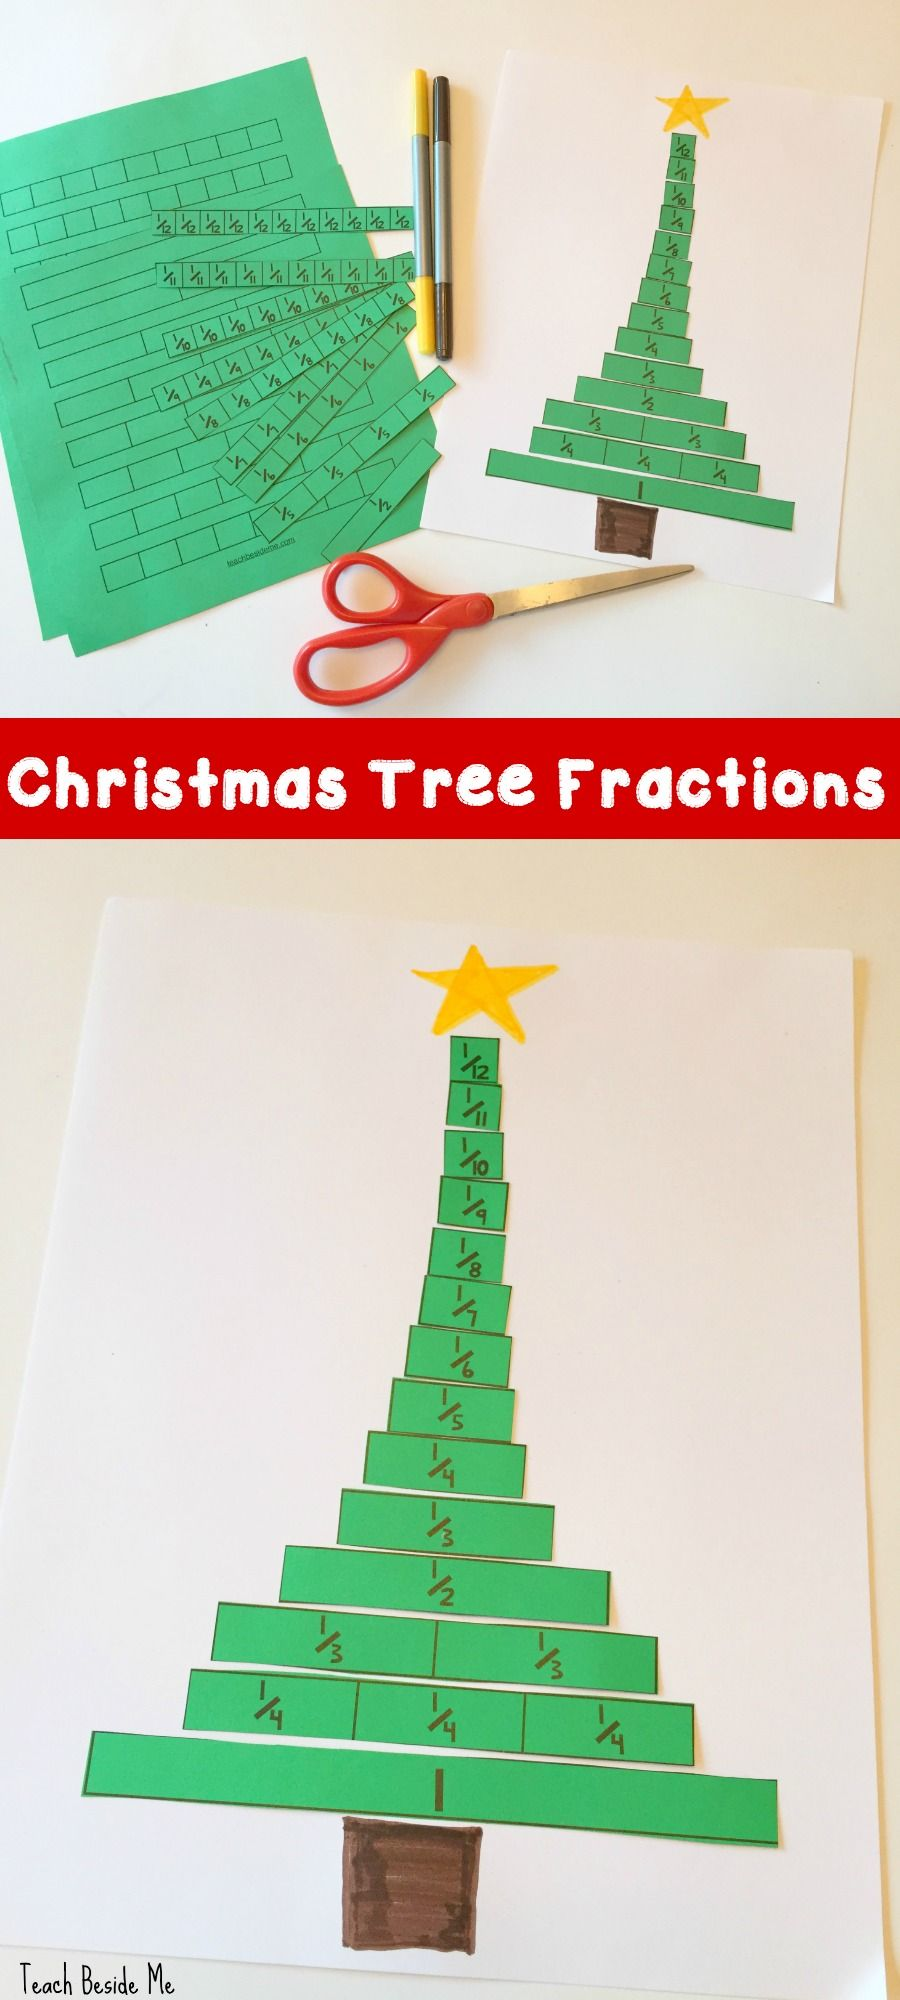 christmas tree fractions printable activity math activities christmas math math crafts. Black Bedroom Furniture Sets. Home Design Ideas